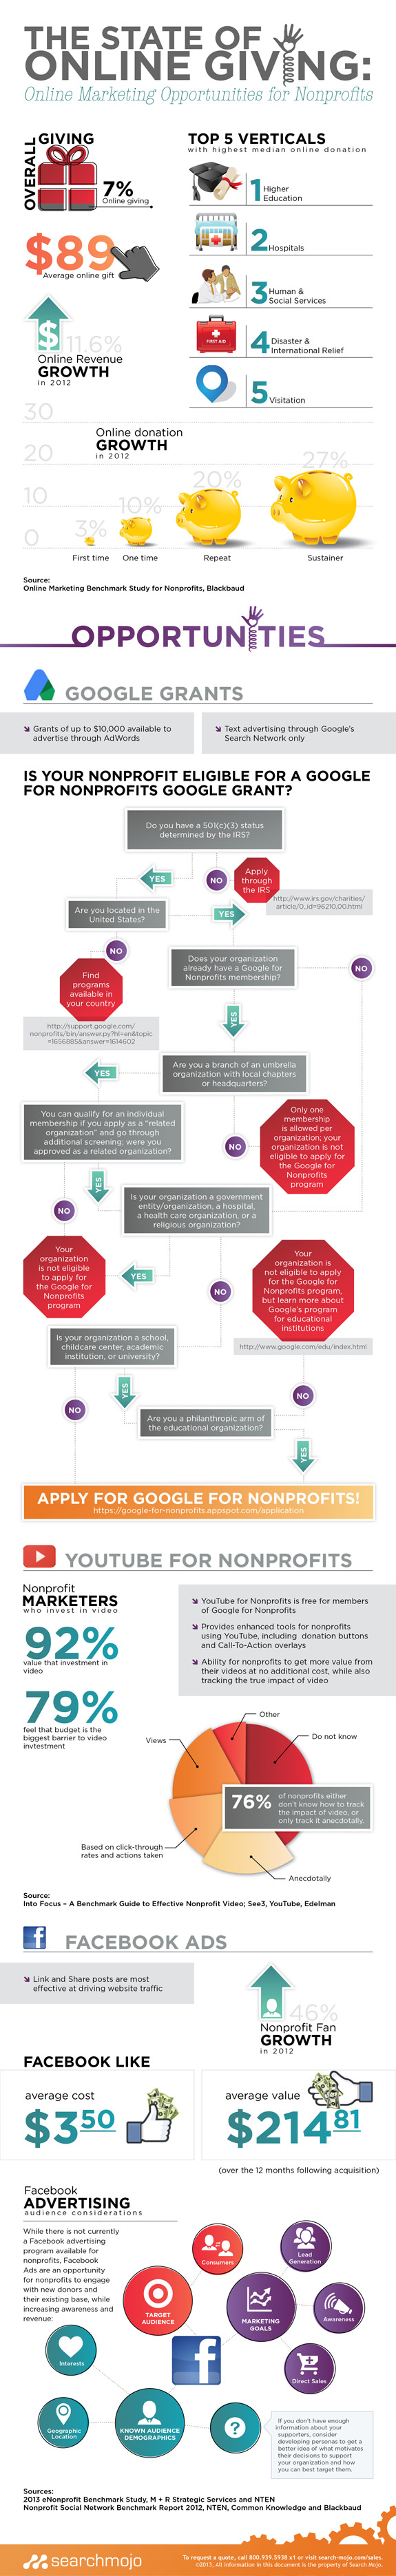 The_State_of_Online_Giving_Infographic